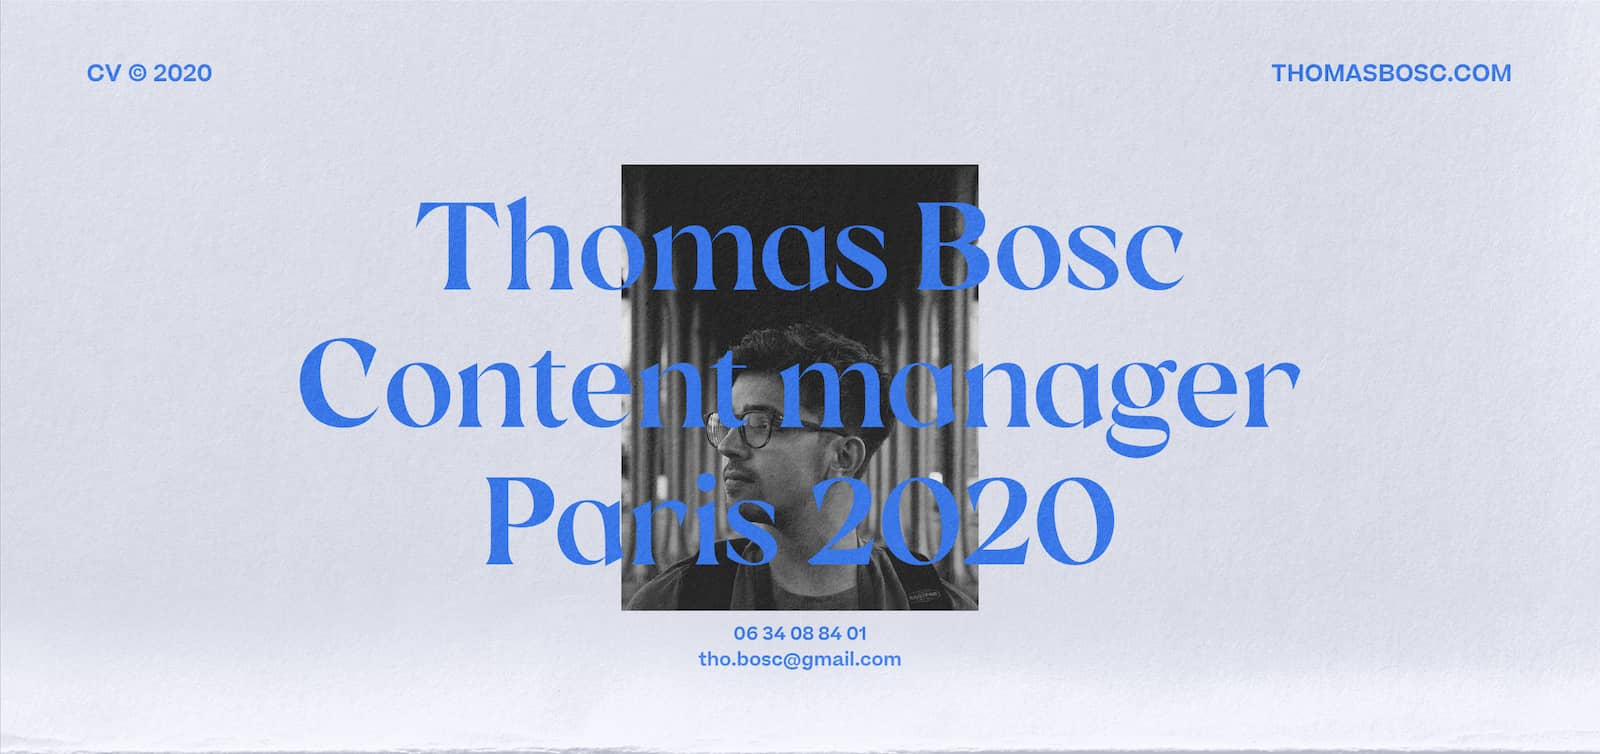 CV Thomas Bosc - Content Manager